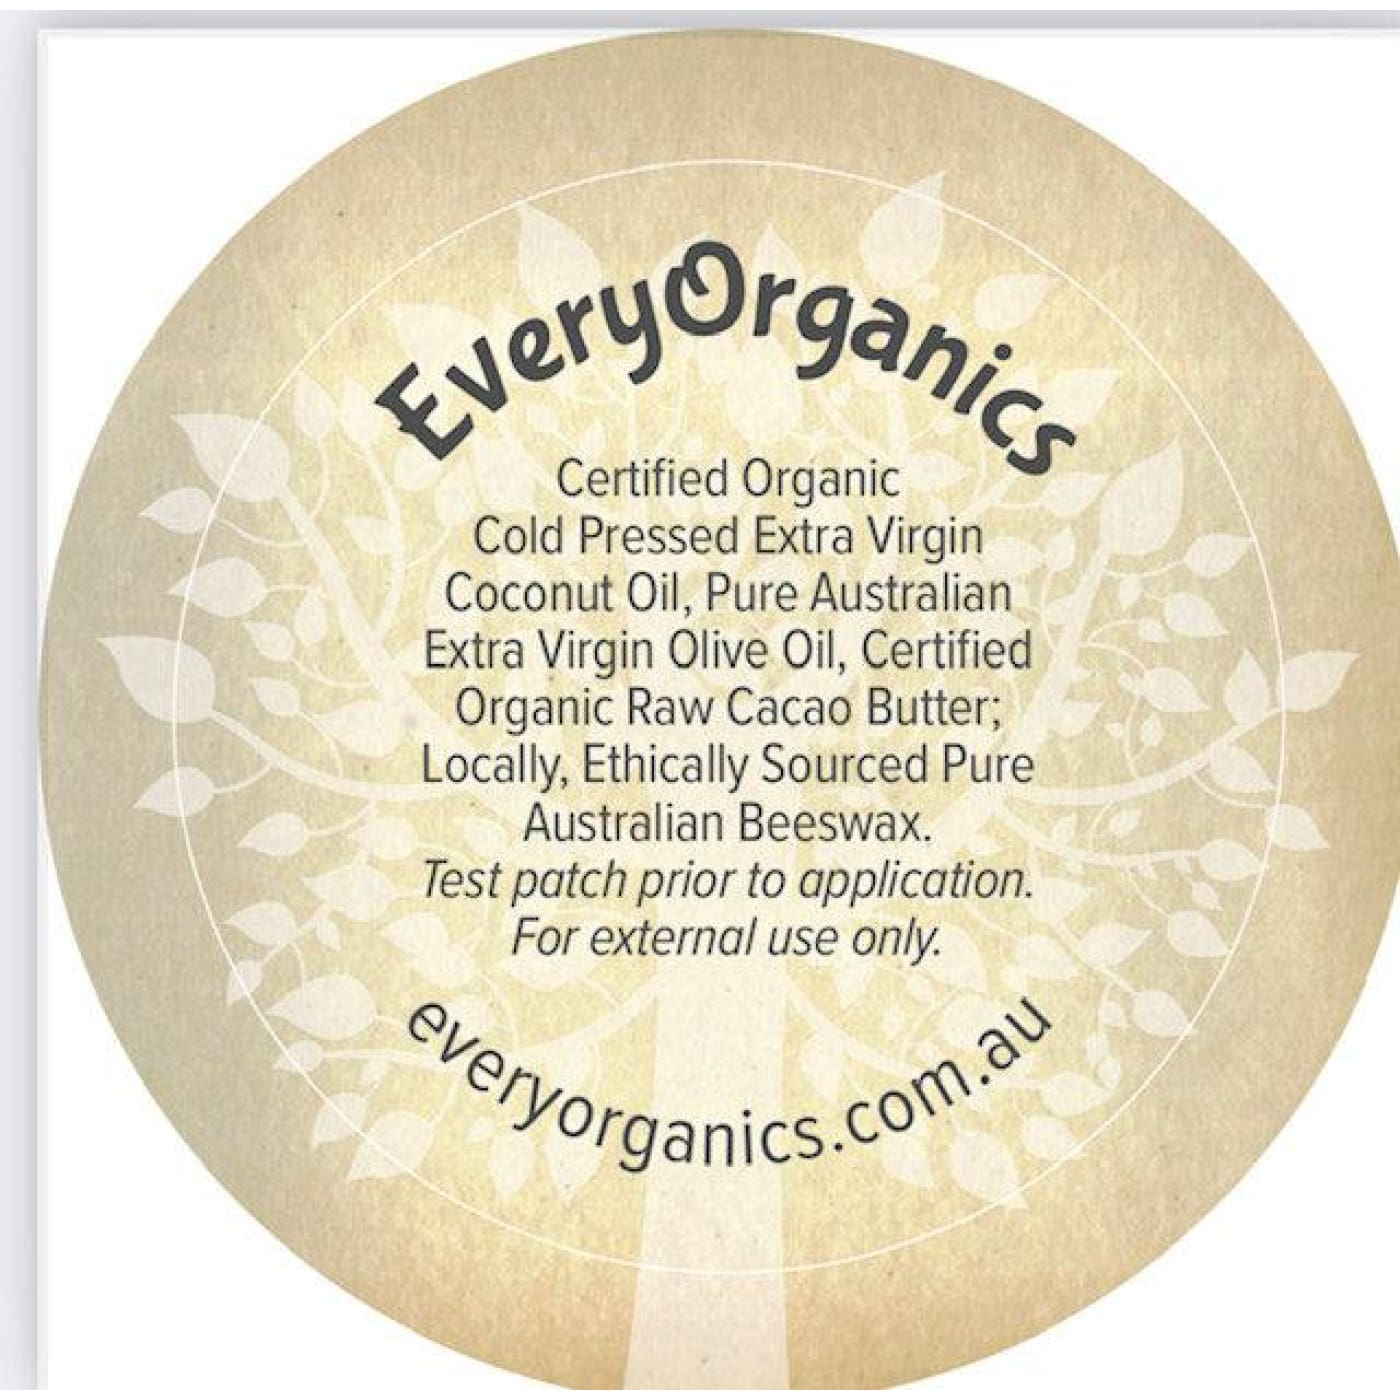 EveryOrganics Baby Balm Unscented 100mls - 100ml - HEALTH & HOME SAFETY - ORGANIC CARE